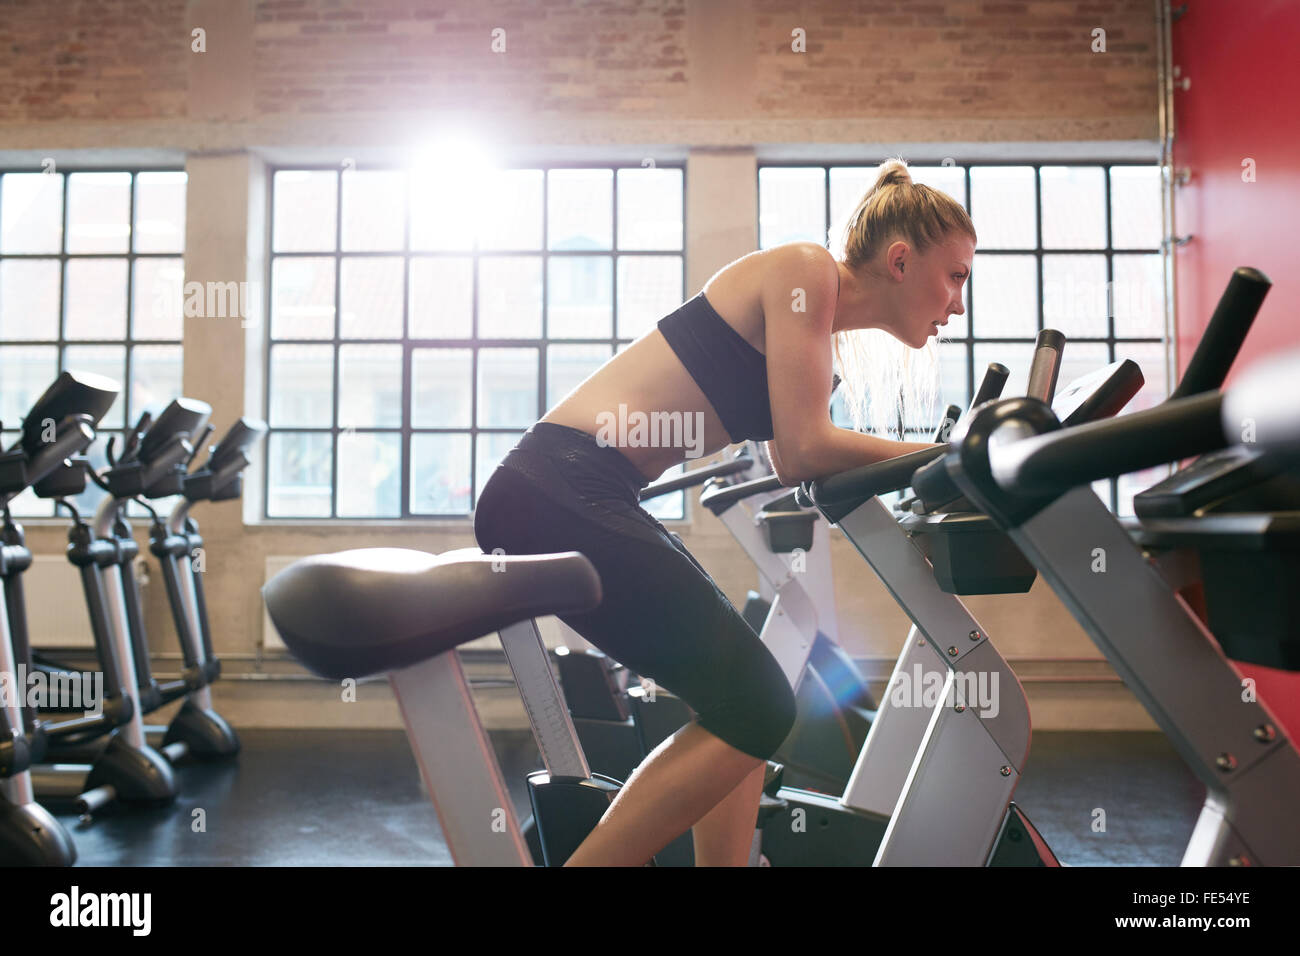 Young woman working out on exercise bike at the gym. Indoor shot of a female doing fitness training on stationary - Stock Image